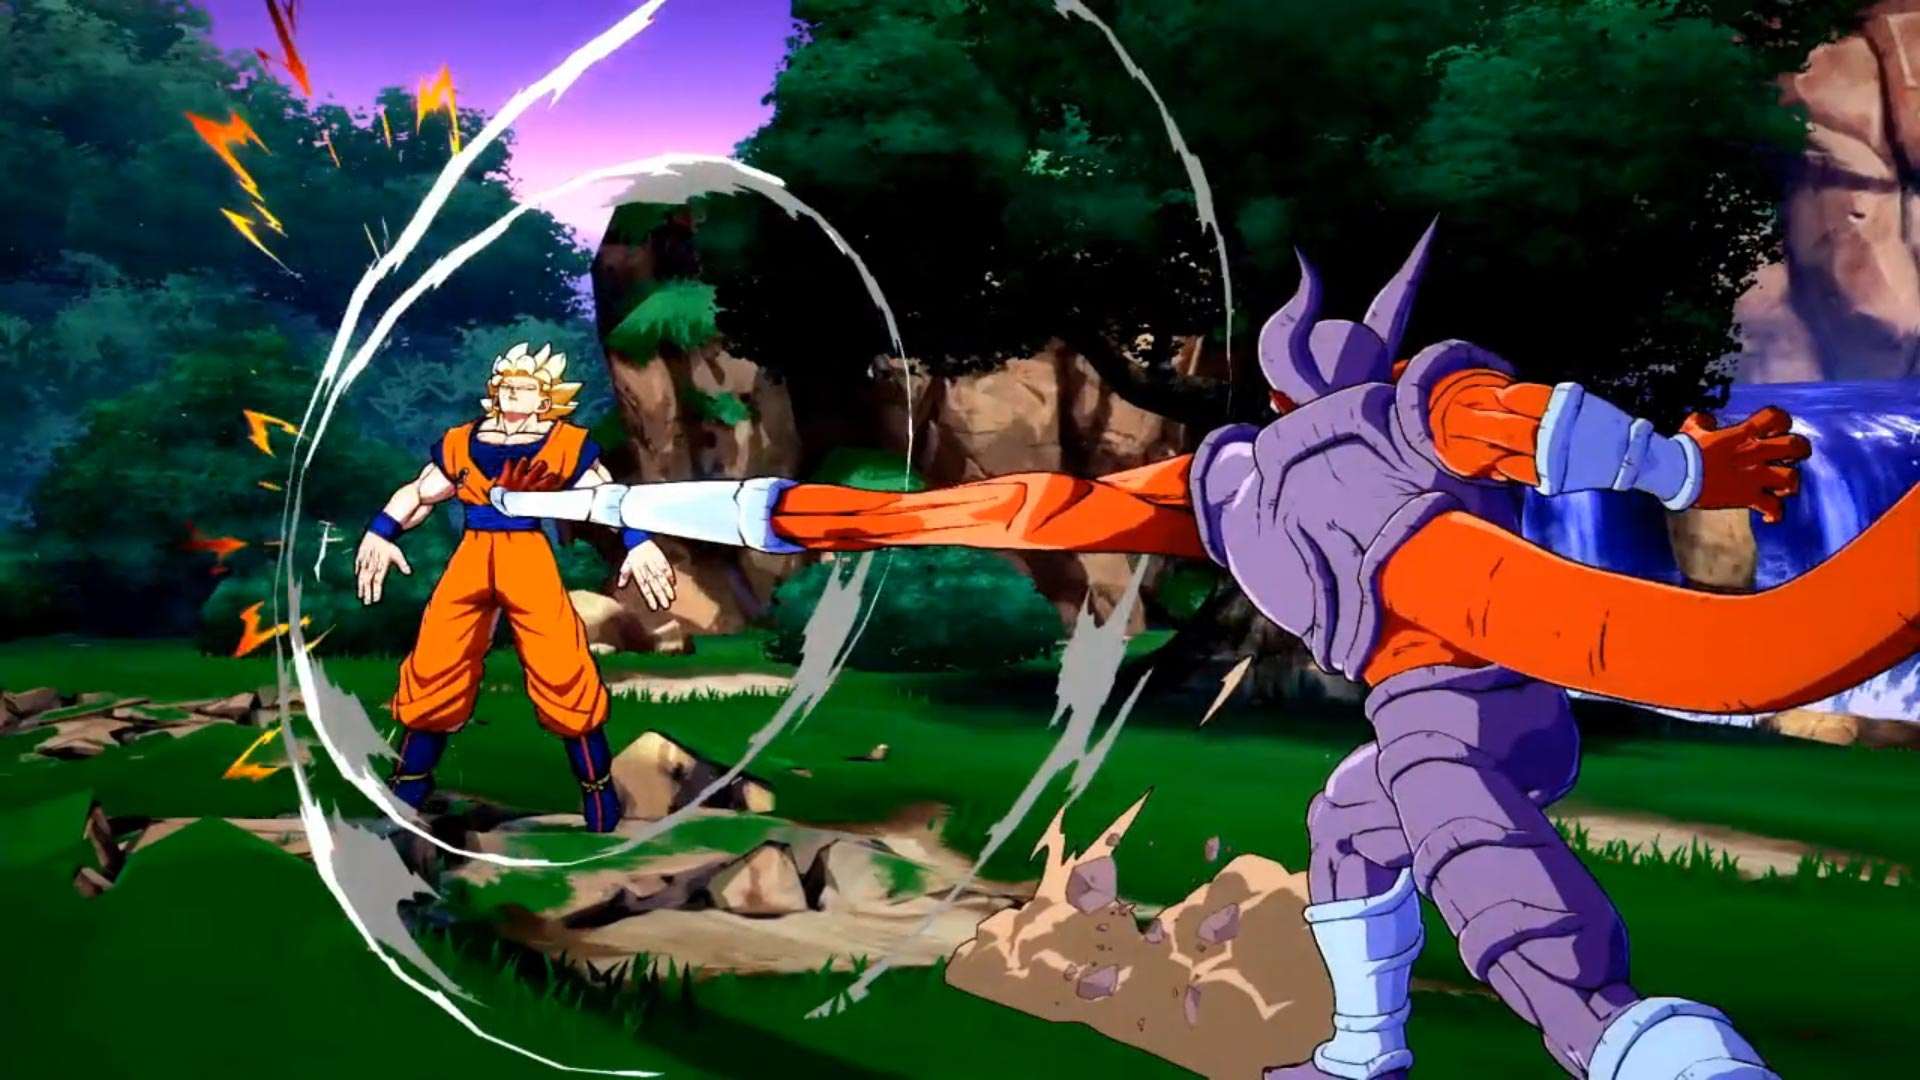 Janemba and Super Saiyan Blue Gogeta Dragon Ball FighterZ gallery 5 out of 12 image gallery